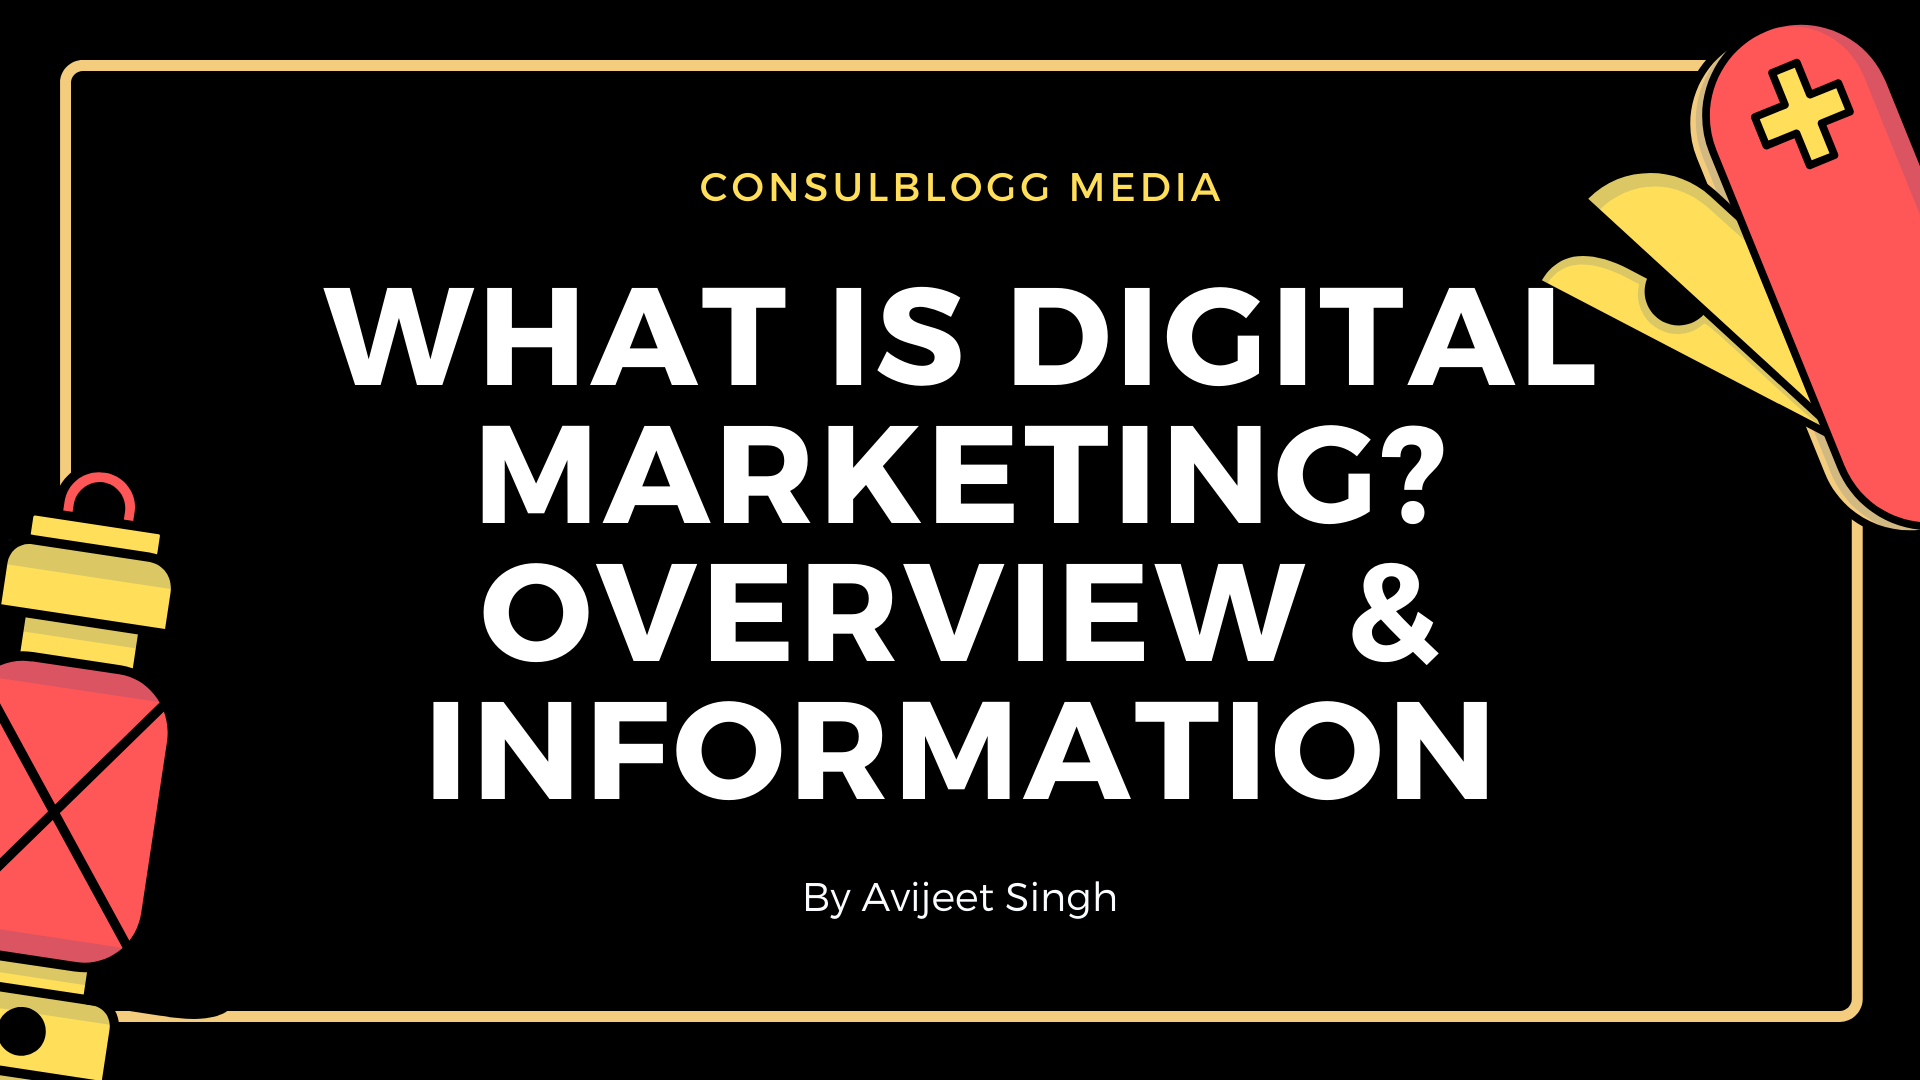 What is digital marketing? overview & information